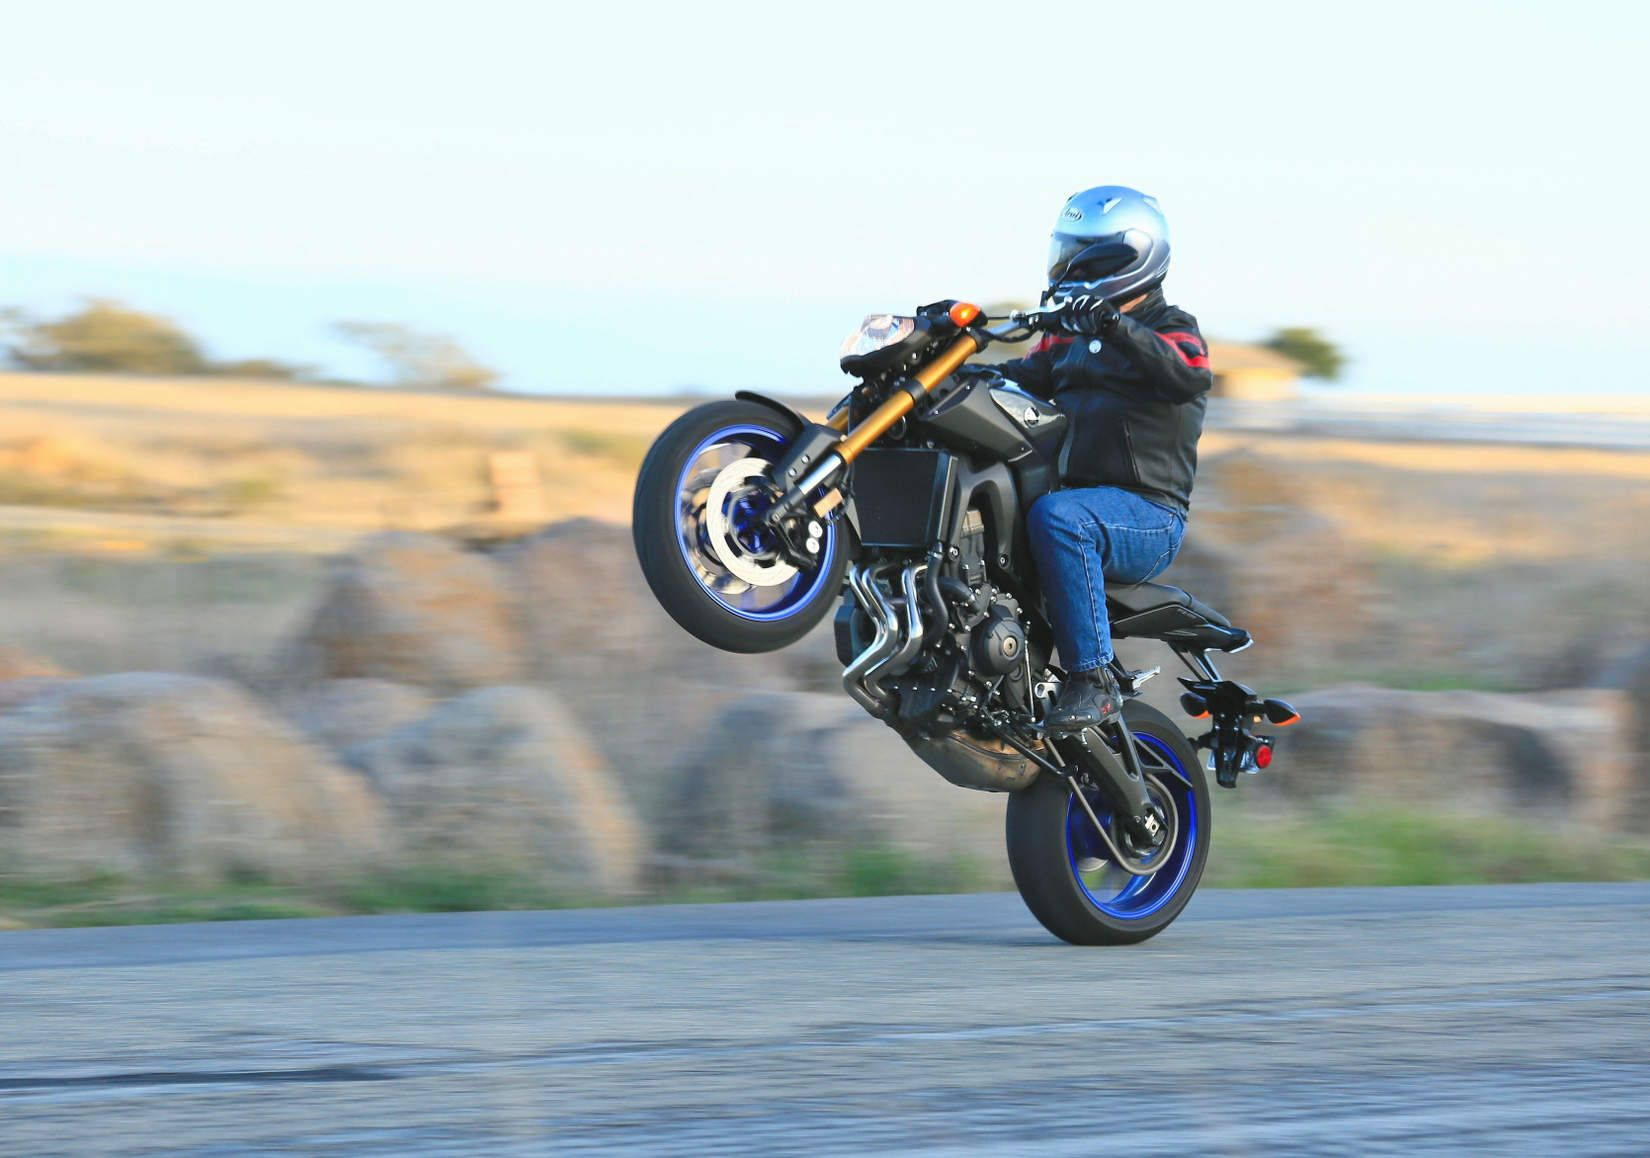 2014 Yamaha FZ-09   First Ride Review and Images   Riders